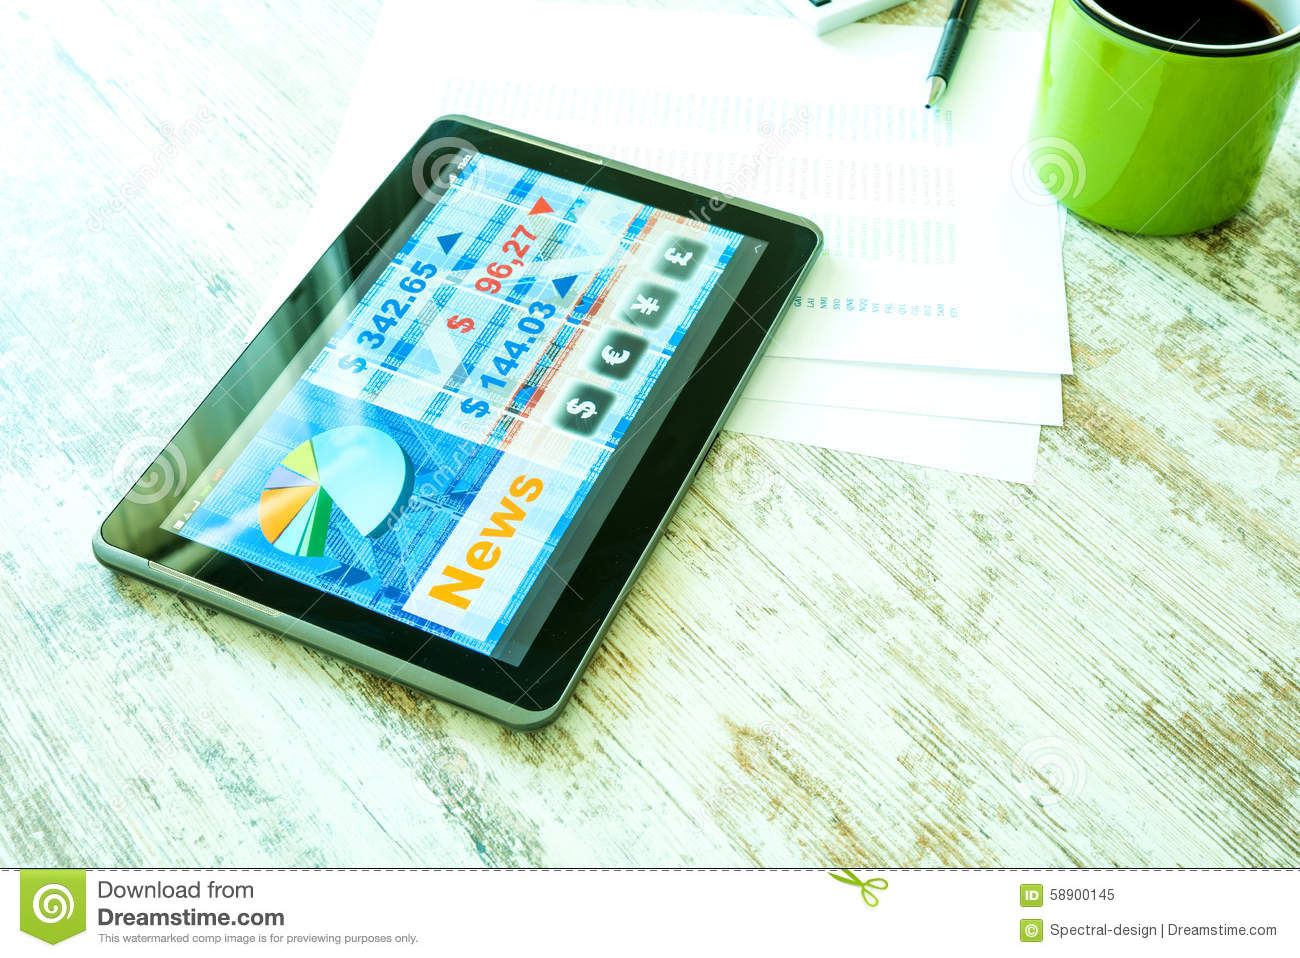 Stock Market Trading App On A Tablet PC Stock Photo